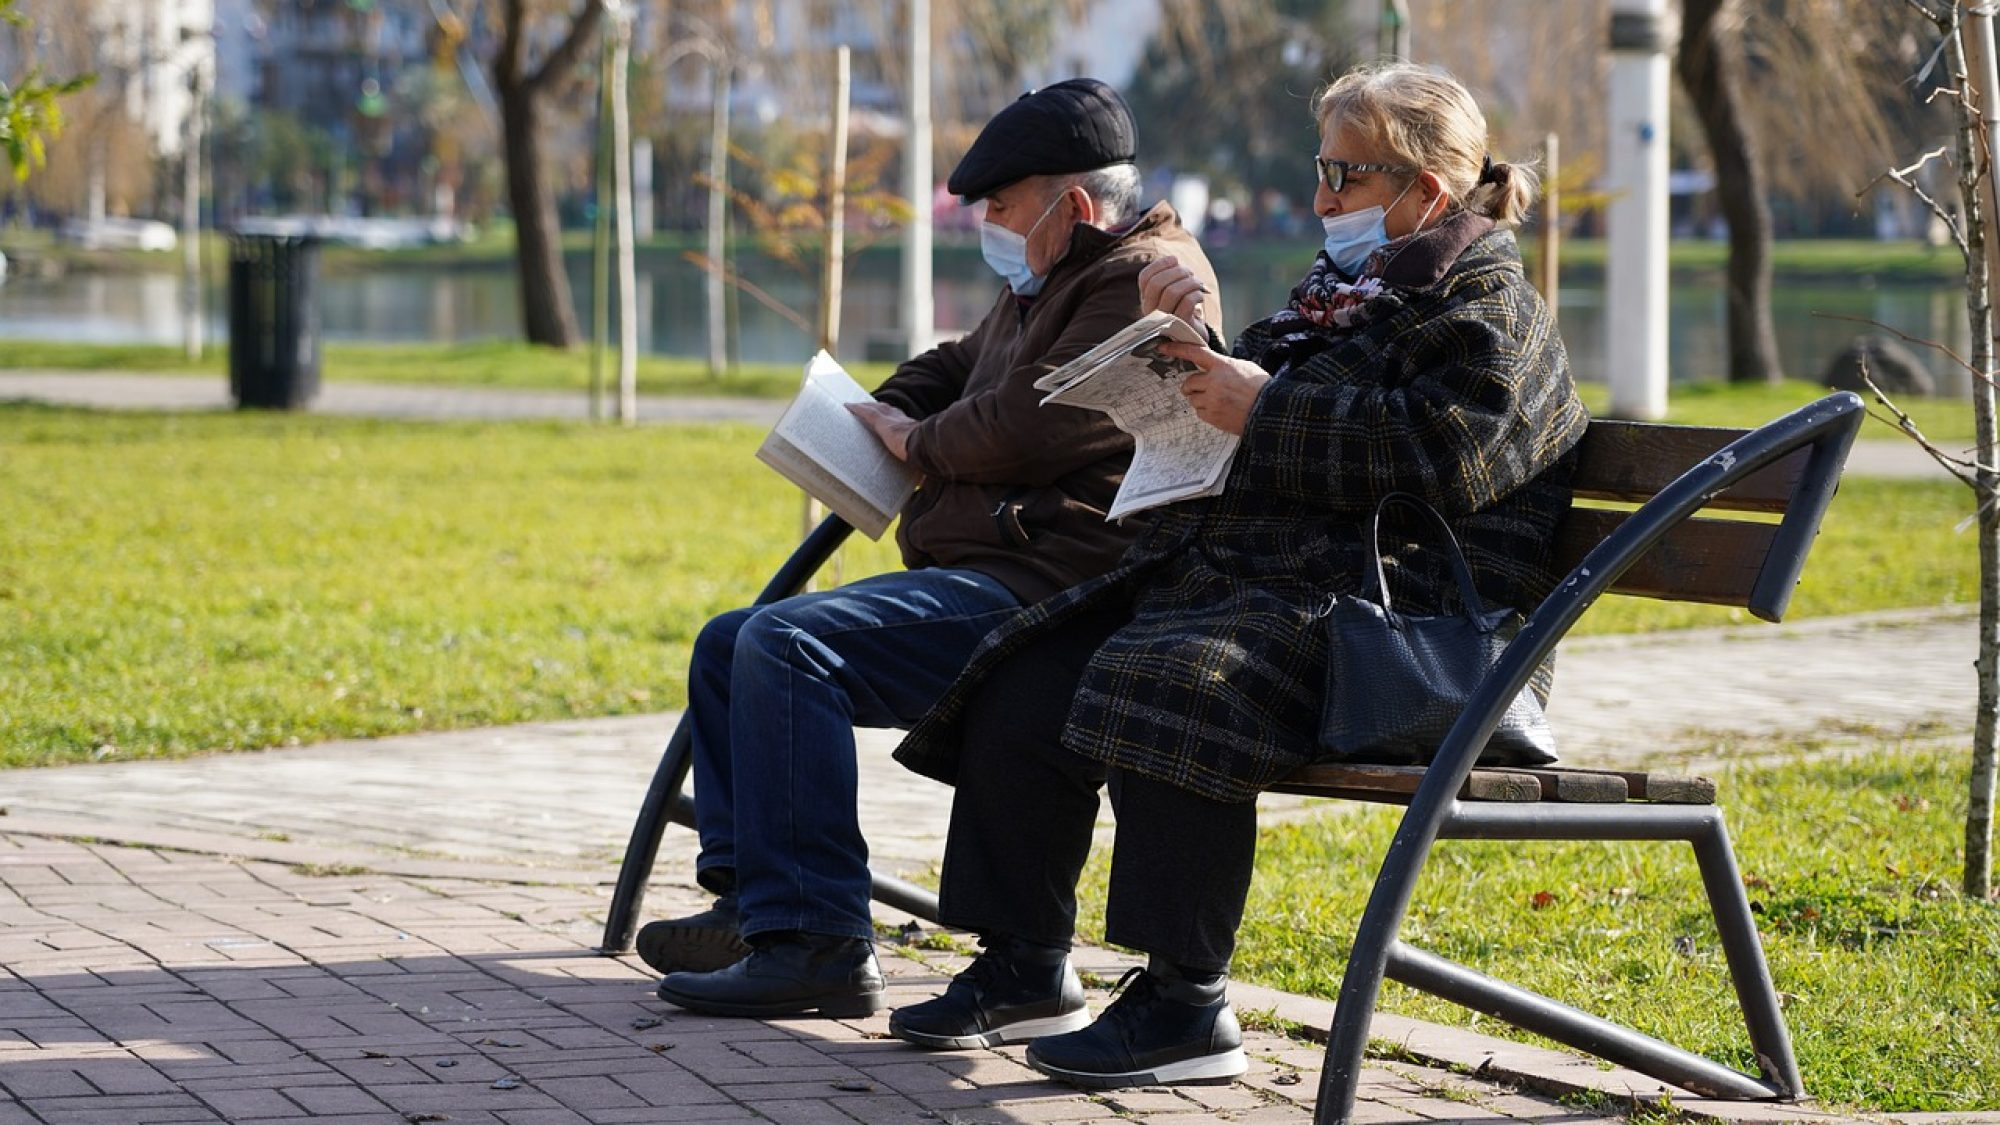 two elderly people with masks on sit on a bench outside